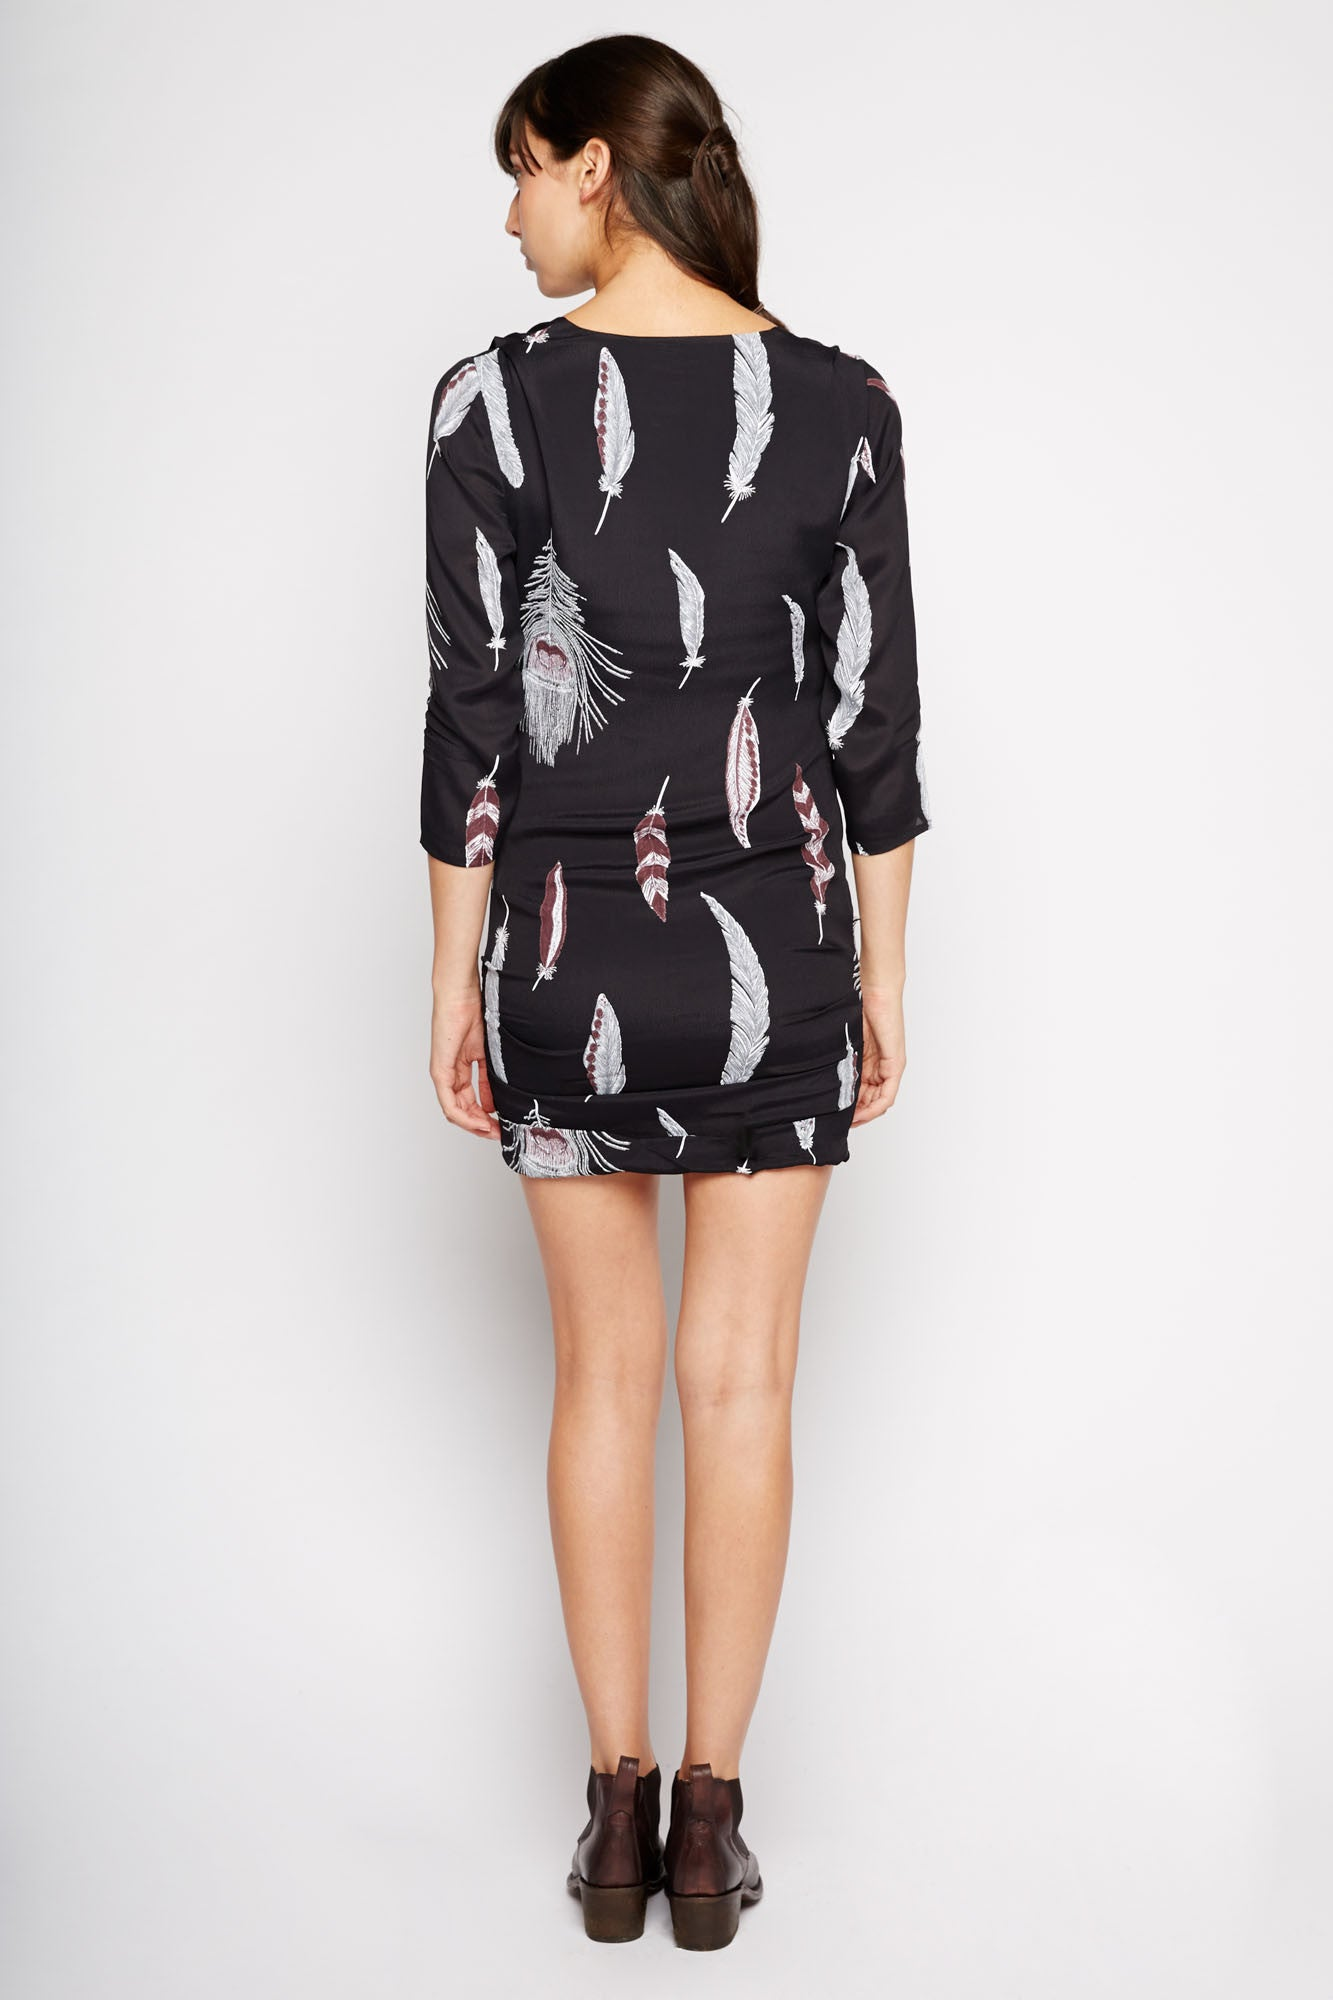 Karam Feather Print Dress by Line and Dot